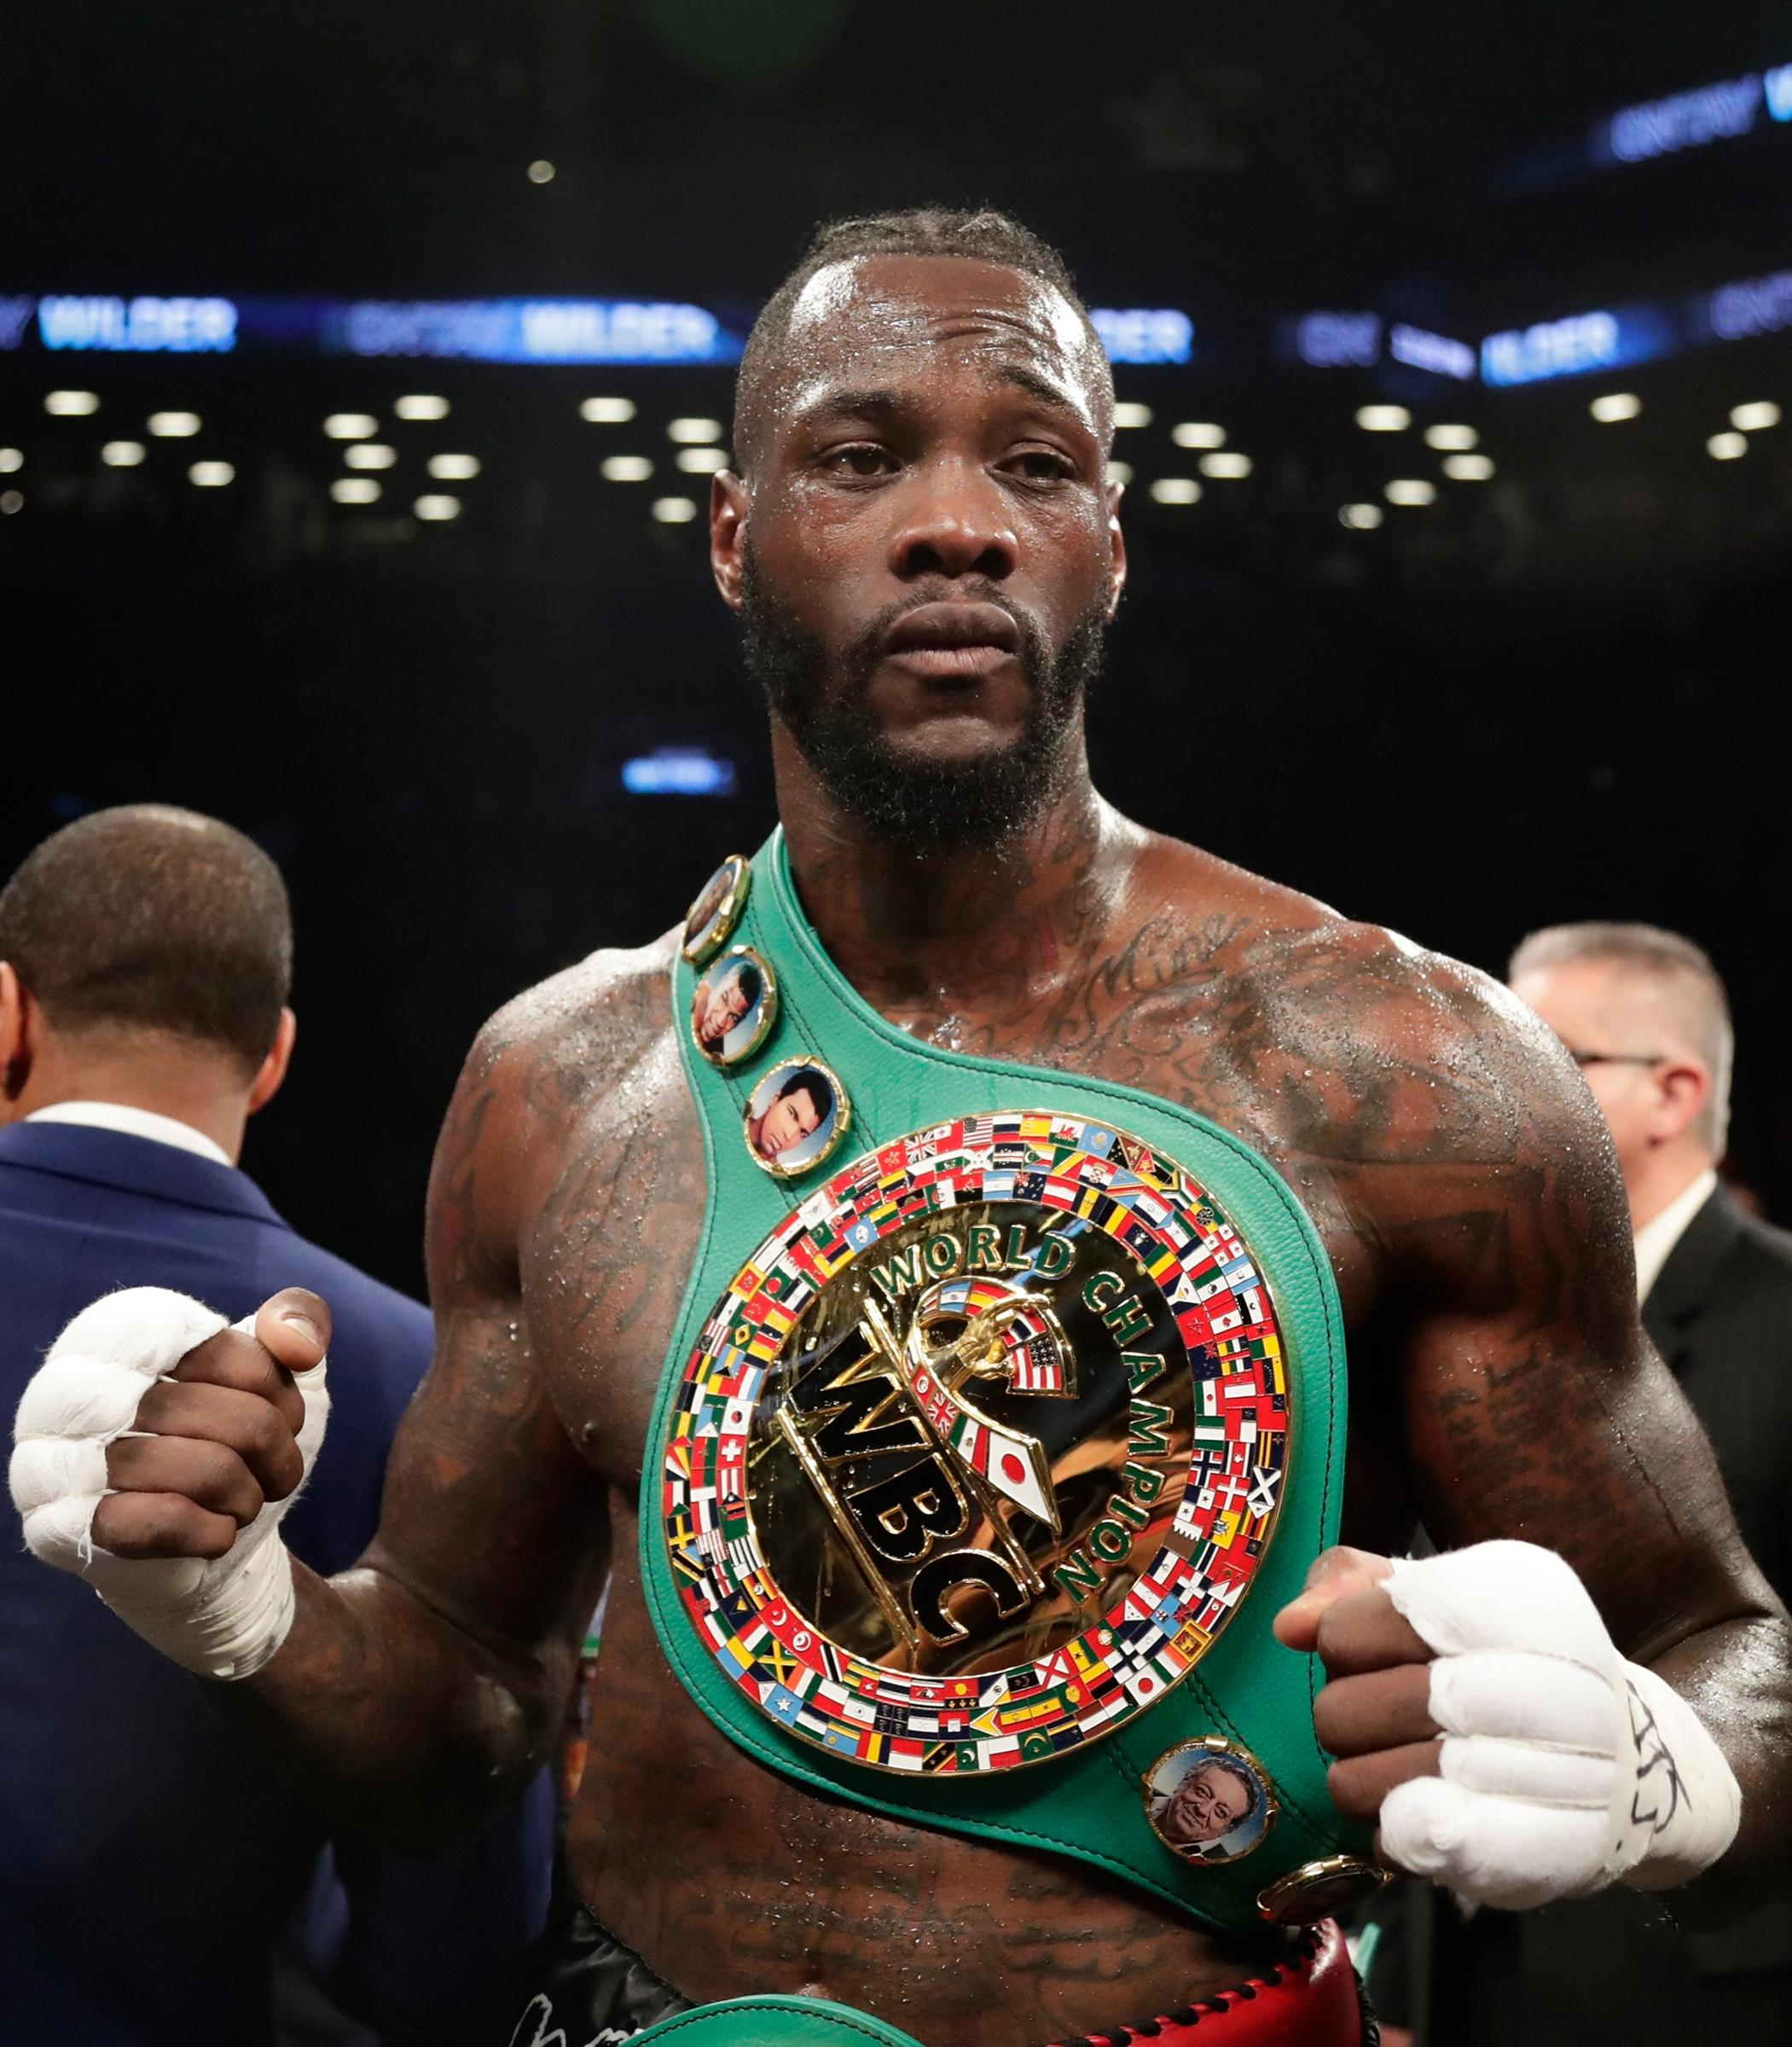 Deontay Wilder is WBC heavyeight champ - the one title Joshua does not hold